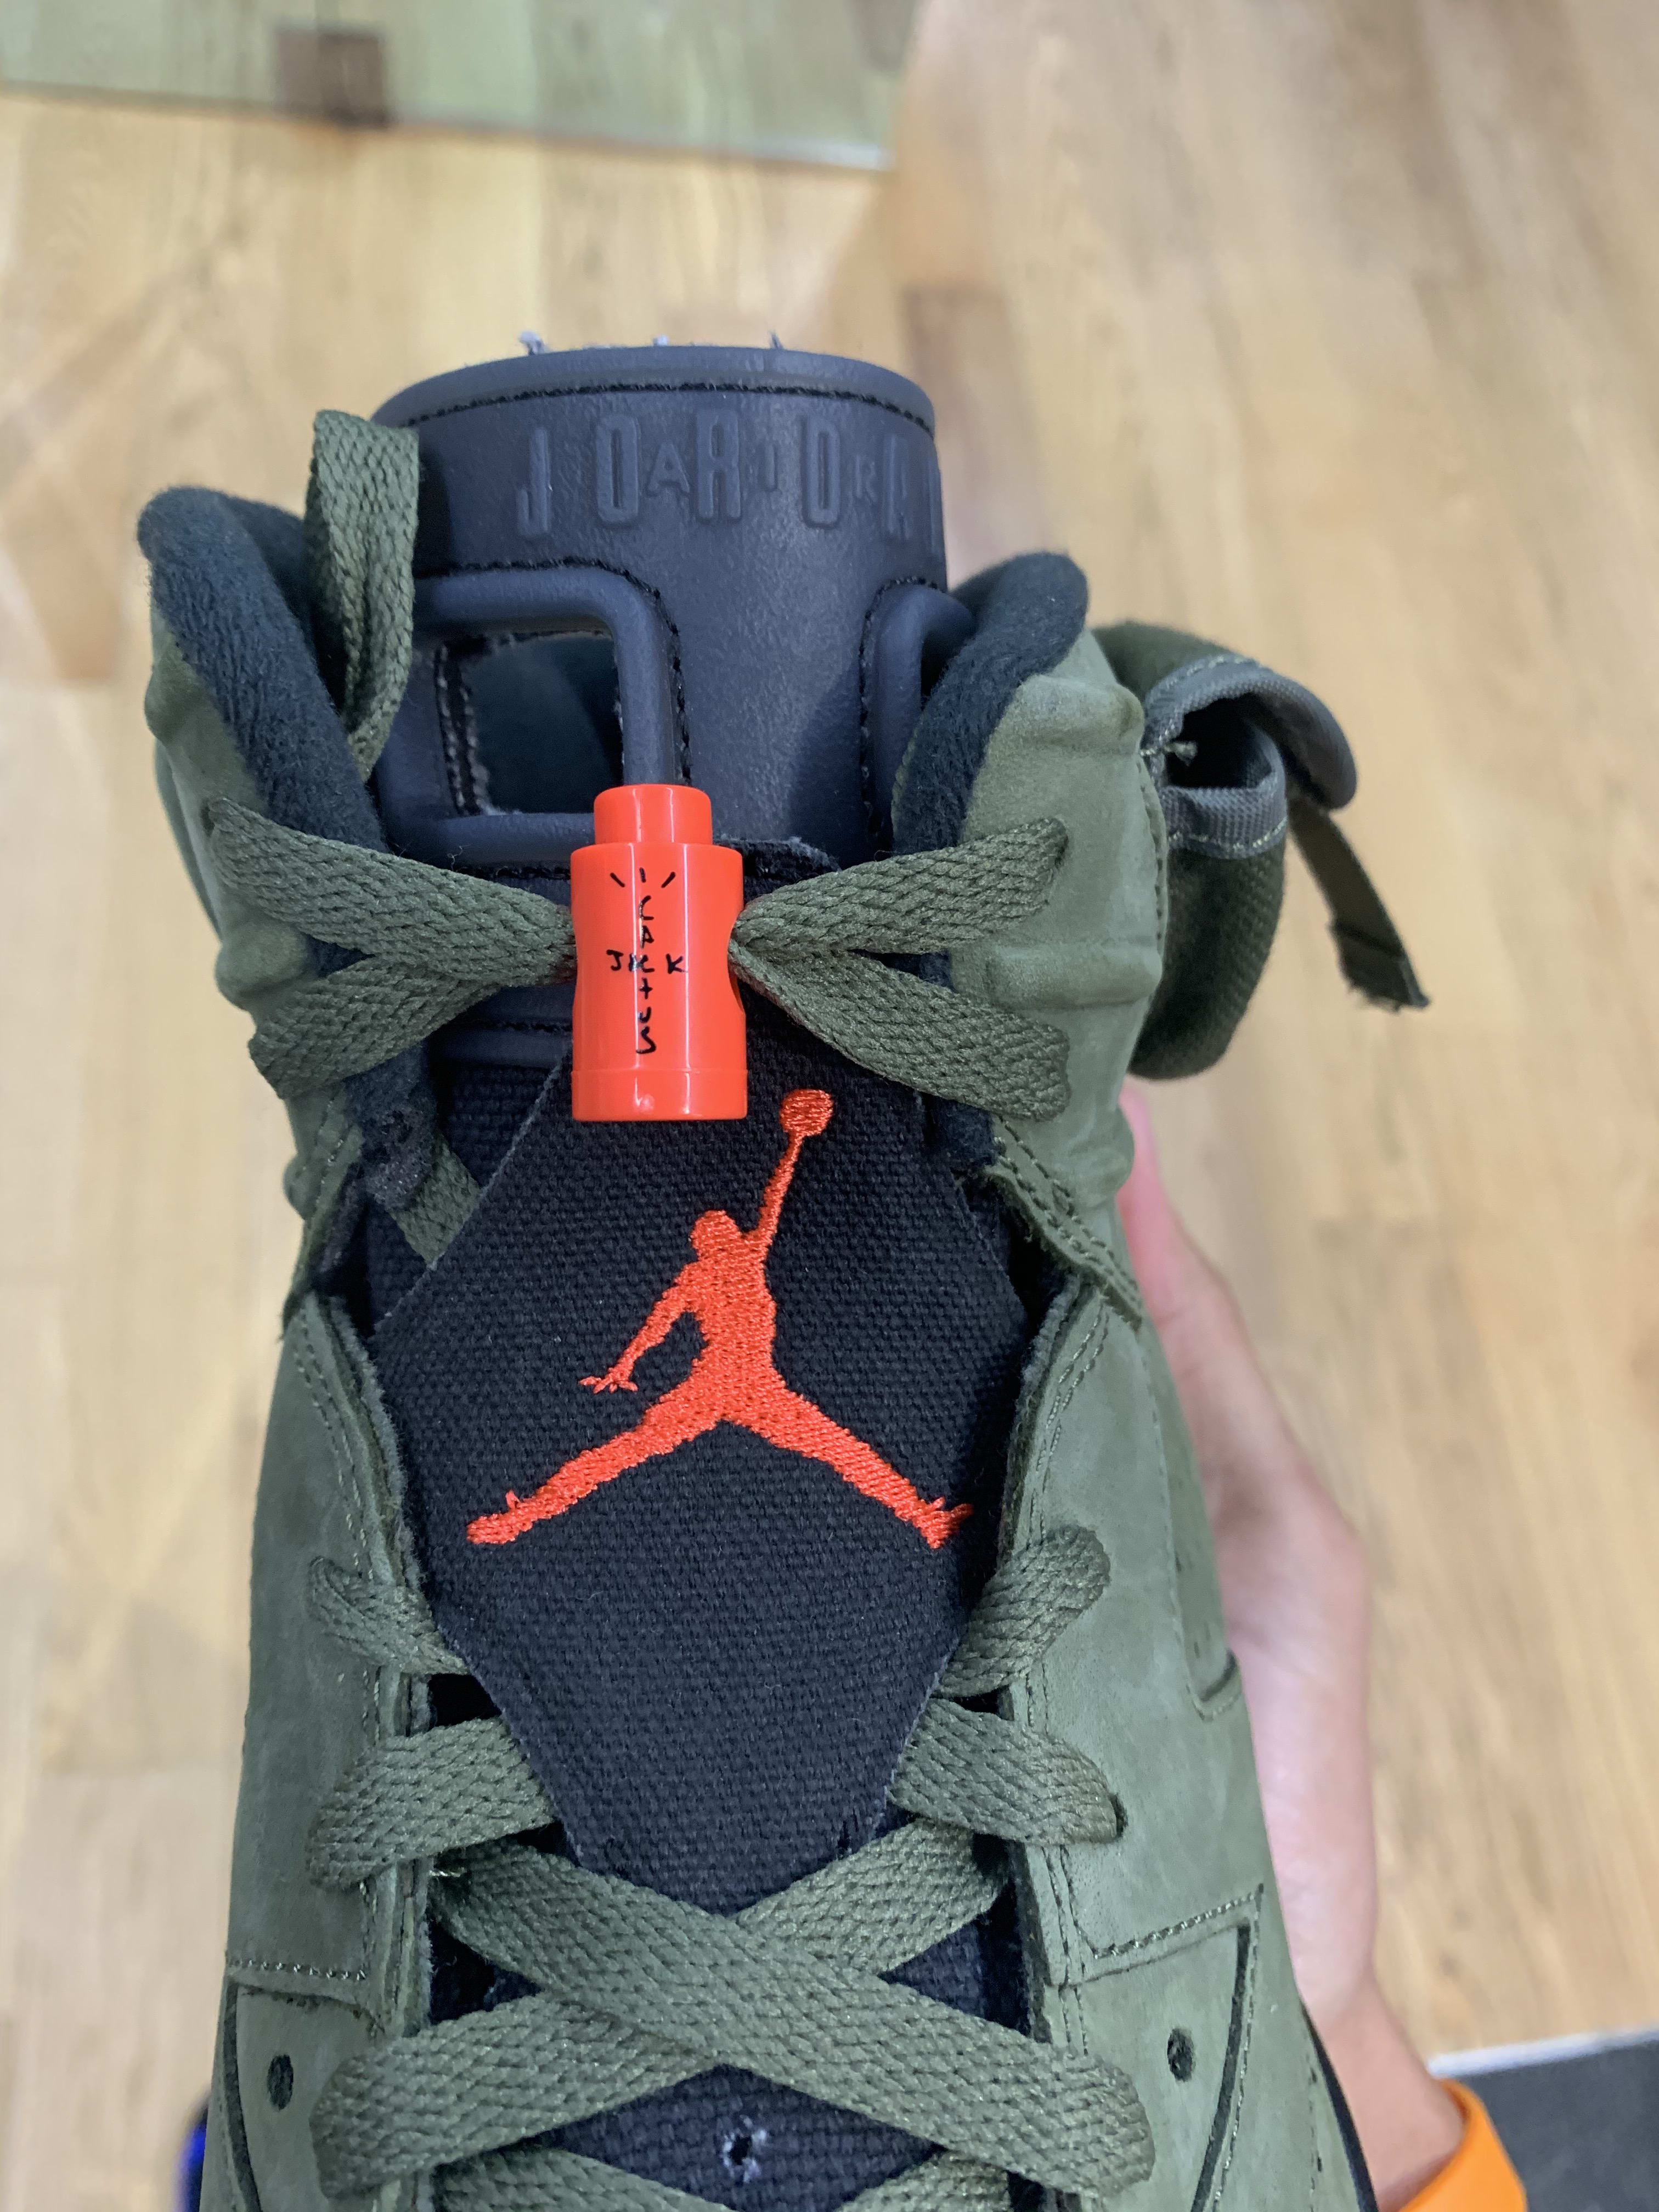 Travis Scott x Air Jordan 6 'Medium Olive/Black/Sail/University Red' CN1084-200 (Tongue)